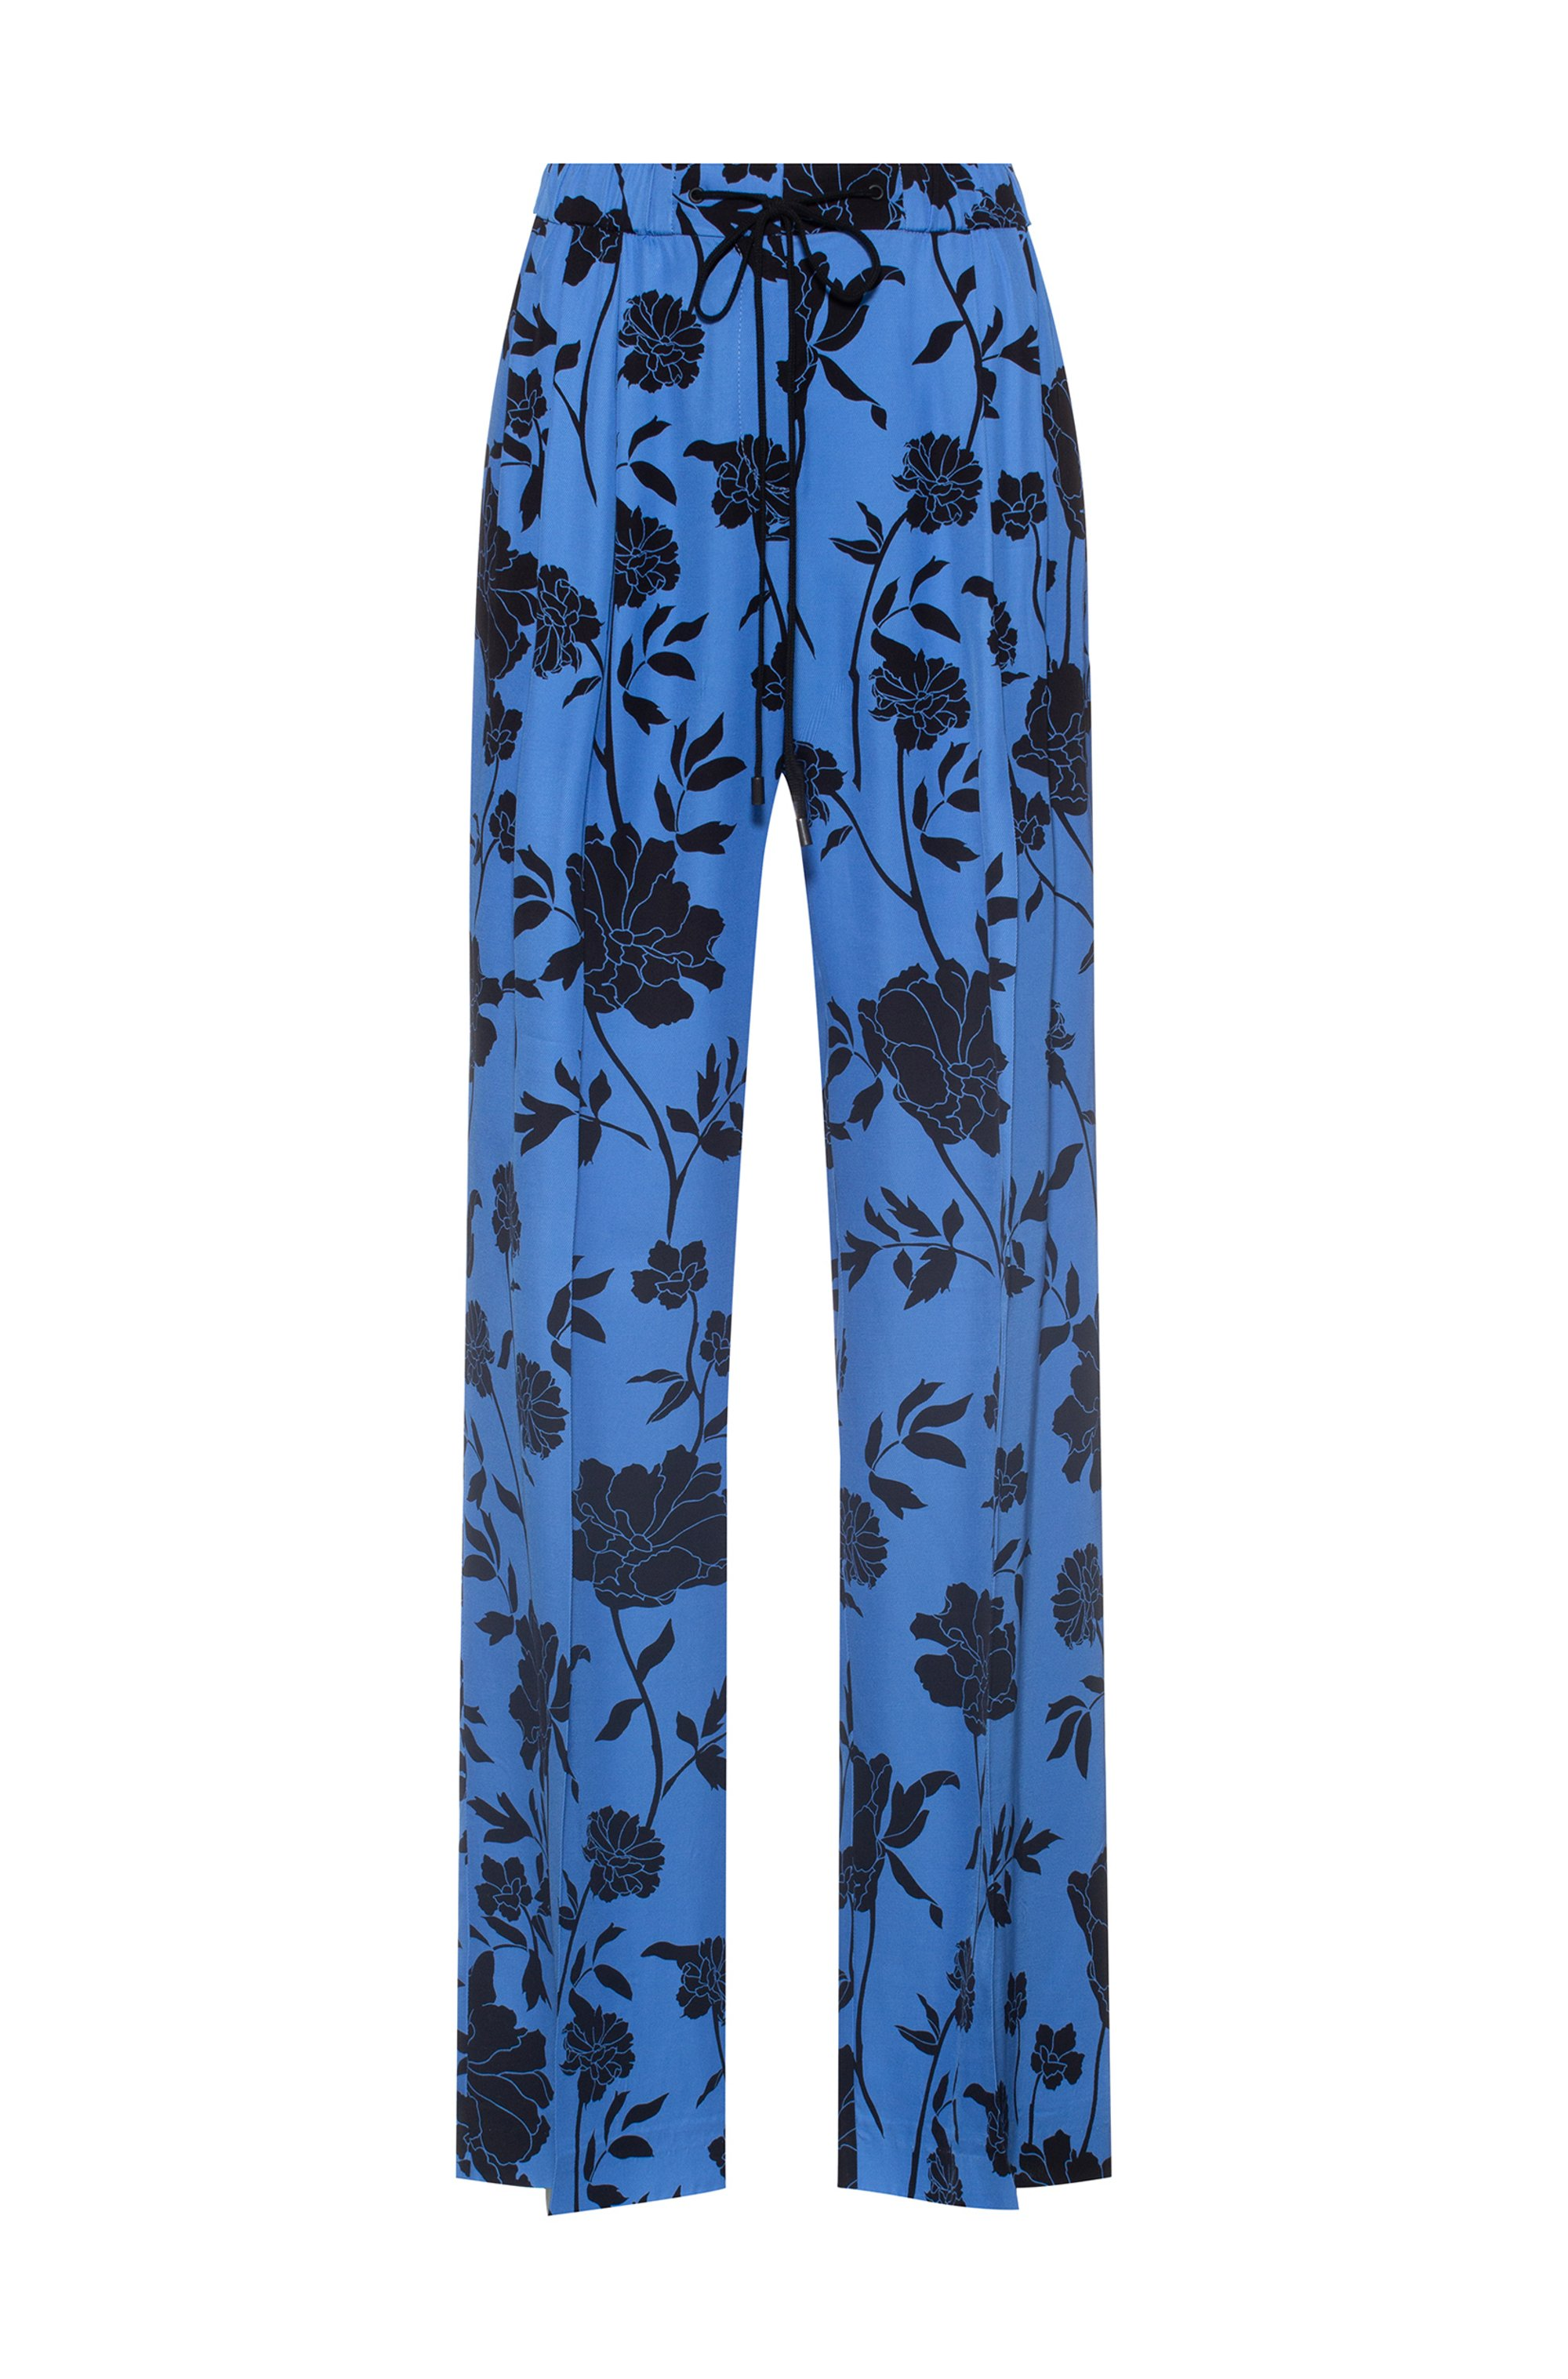 Relaxed-fit wide-leg trousers with collection-themed print, Patterned